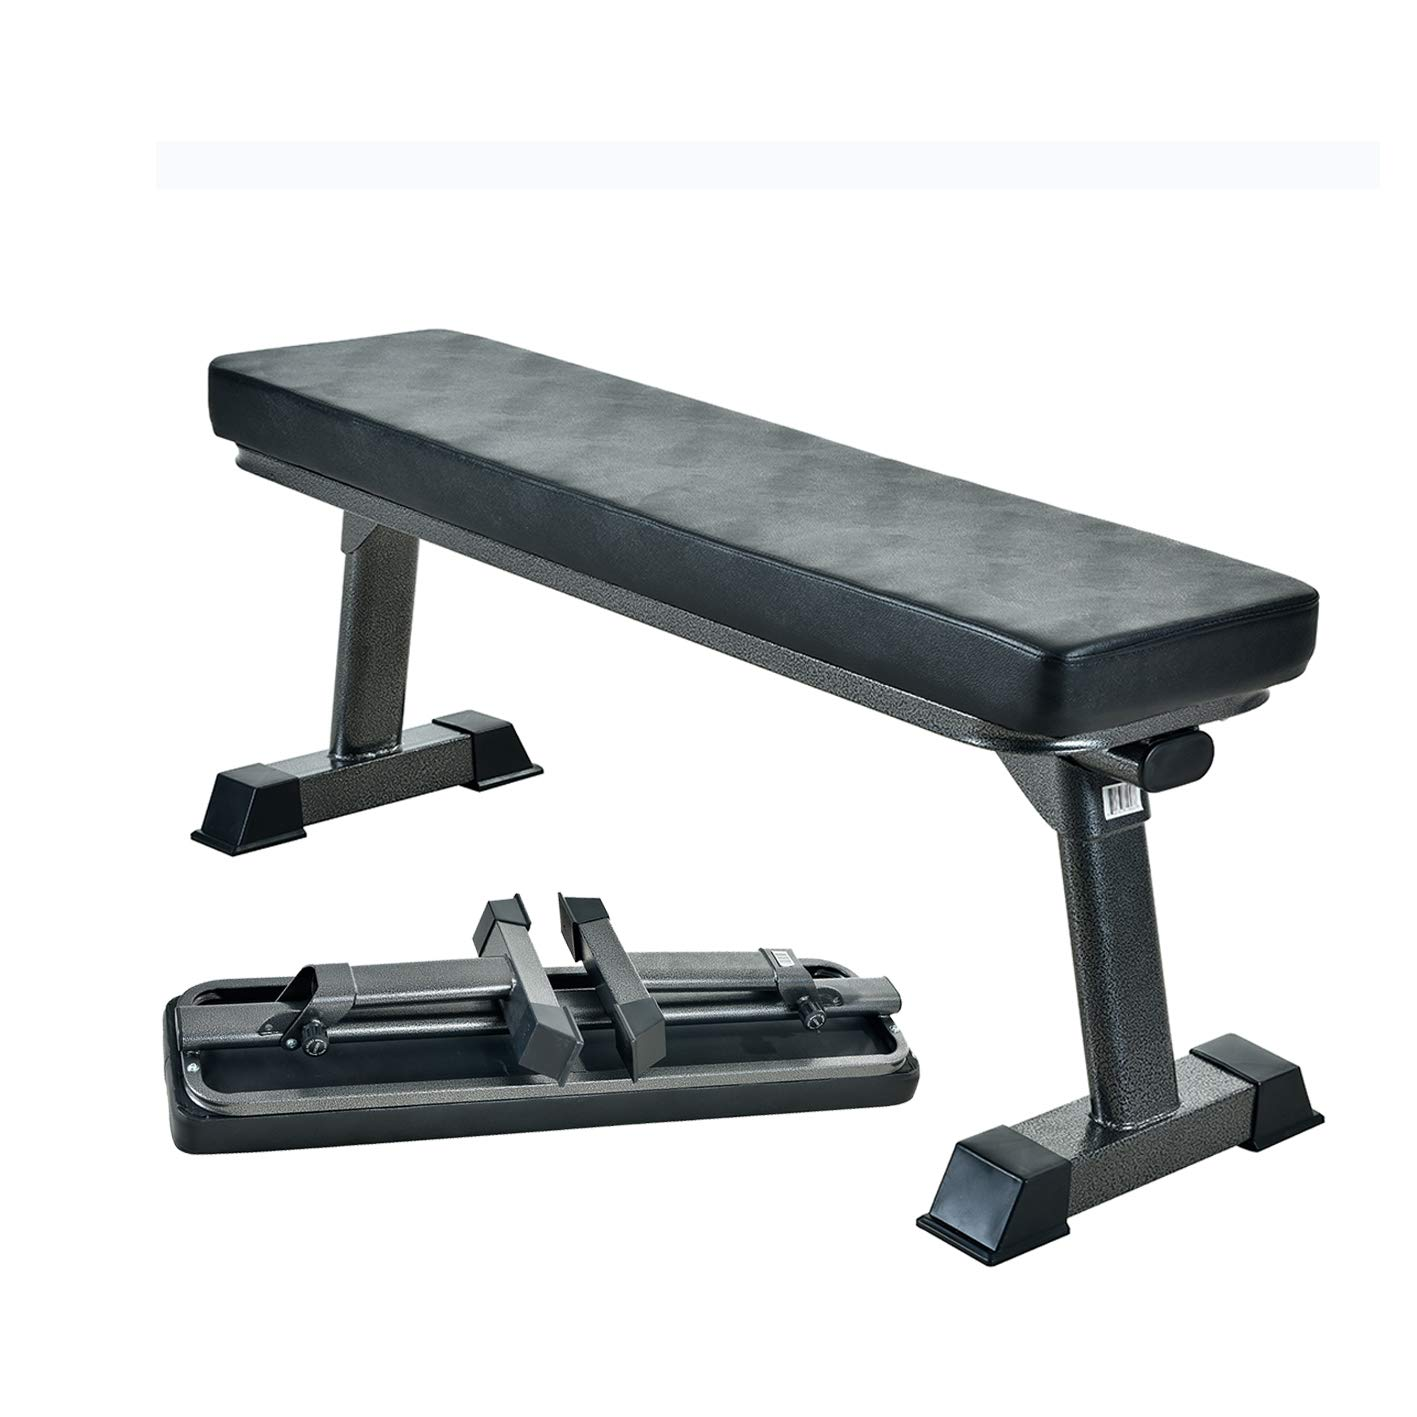 Finer Form Gym Quality Foldable Flat Bench for Multi-Purpose Weight Training and Ab Exercises (Black)